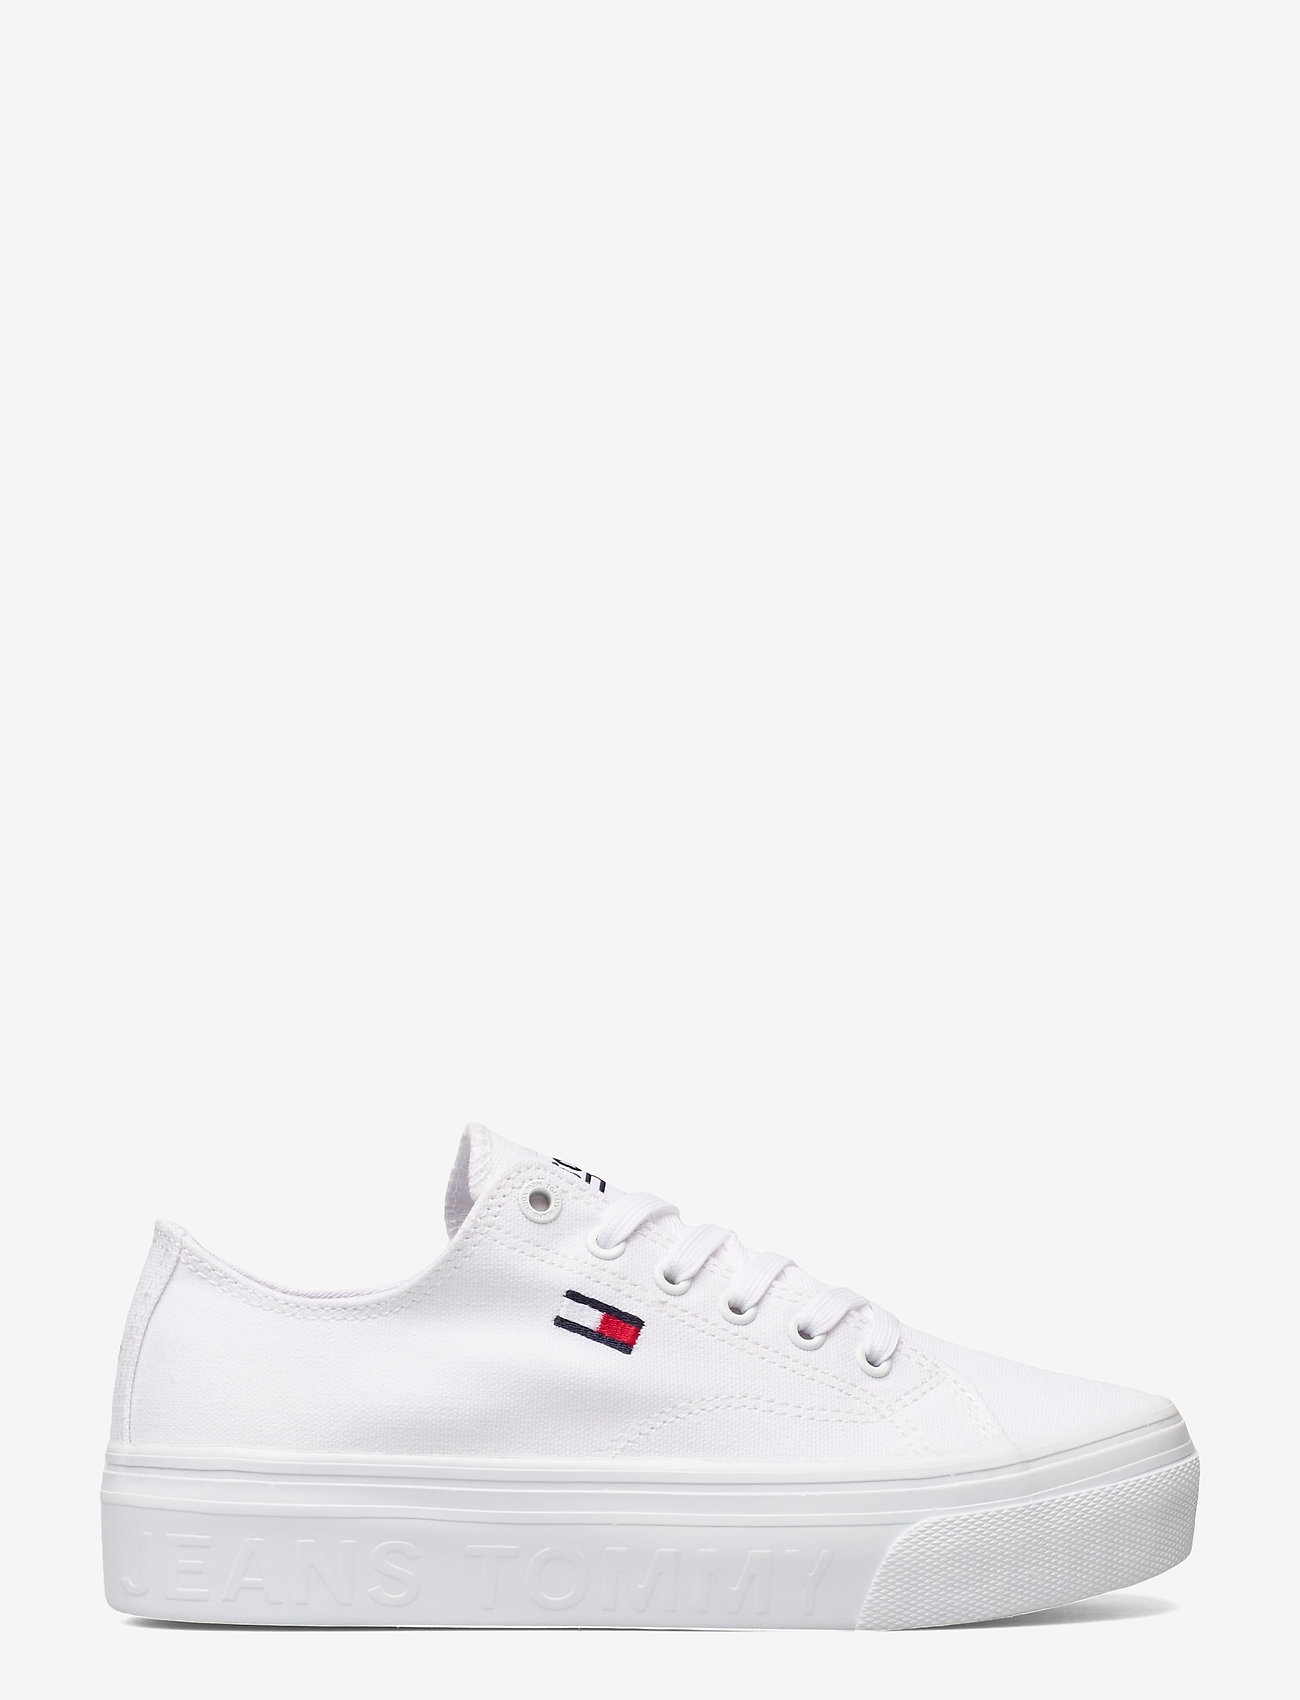 Tommy Hilfiger - TOMMY JEANS FLATFORM VULC - sneakers - white - 1